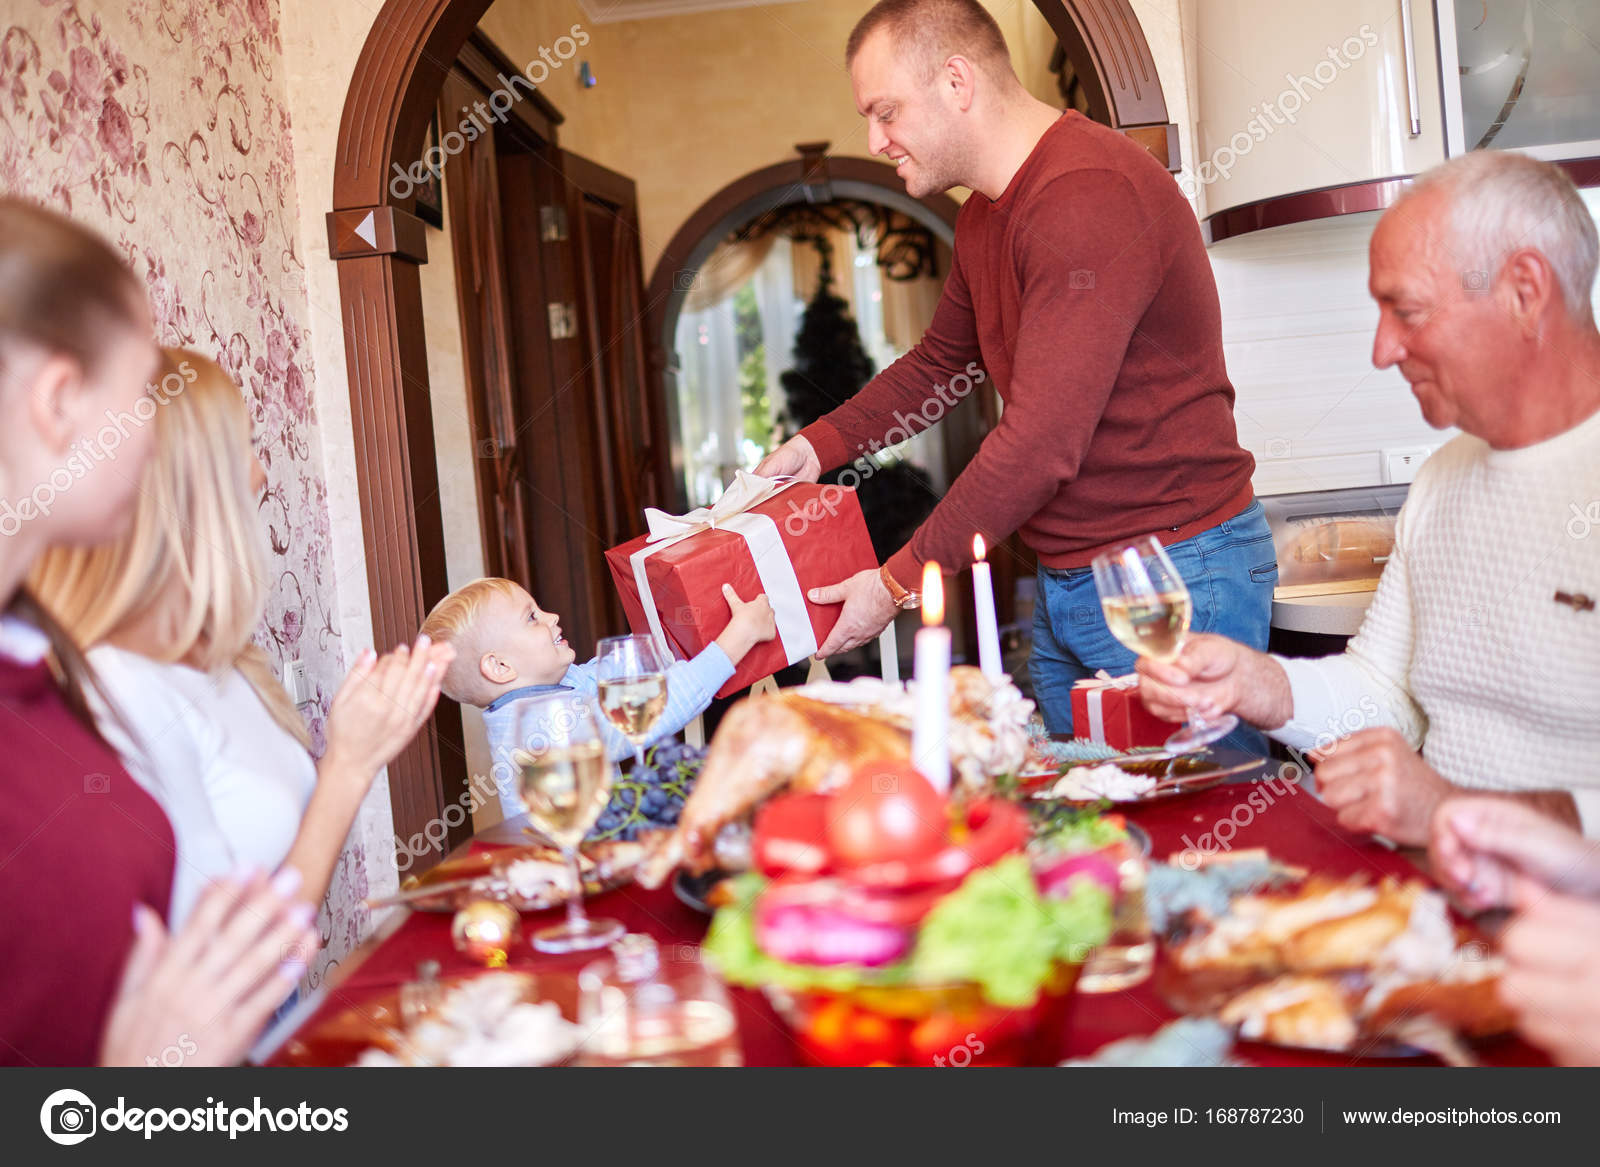 Dad giving a red gift to little son on a festivebackground. Family Christmas presents concept.– stock image